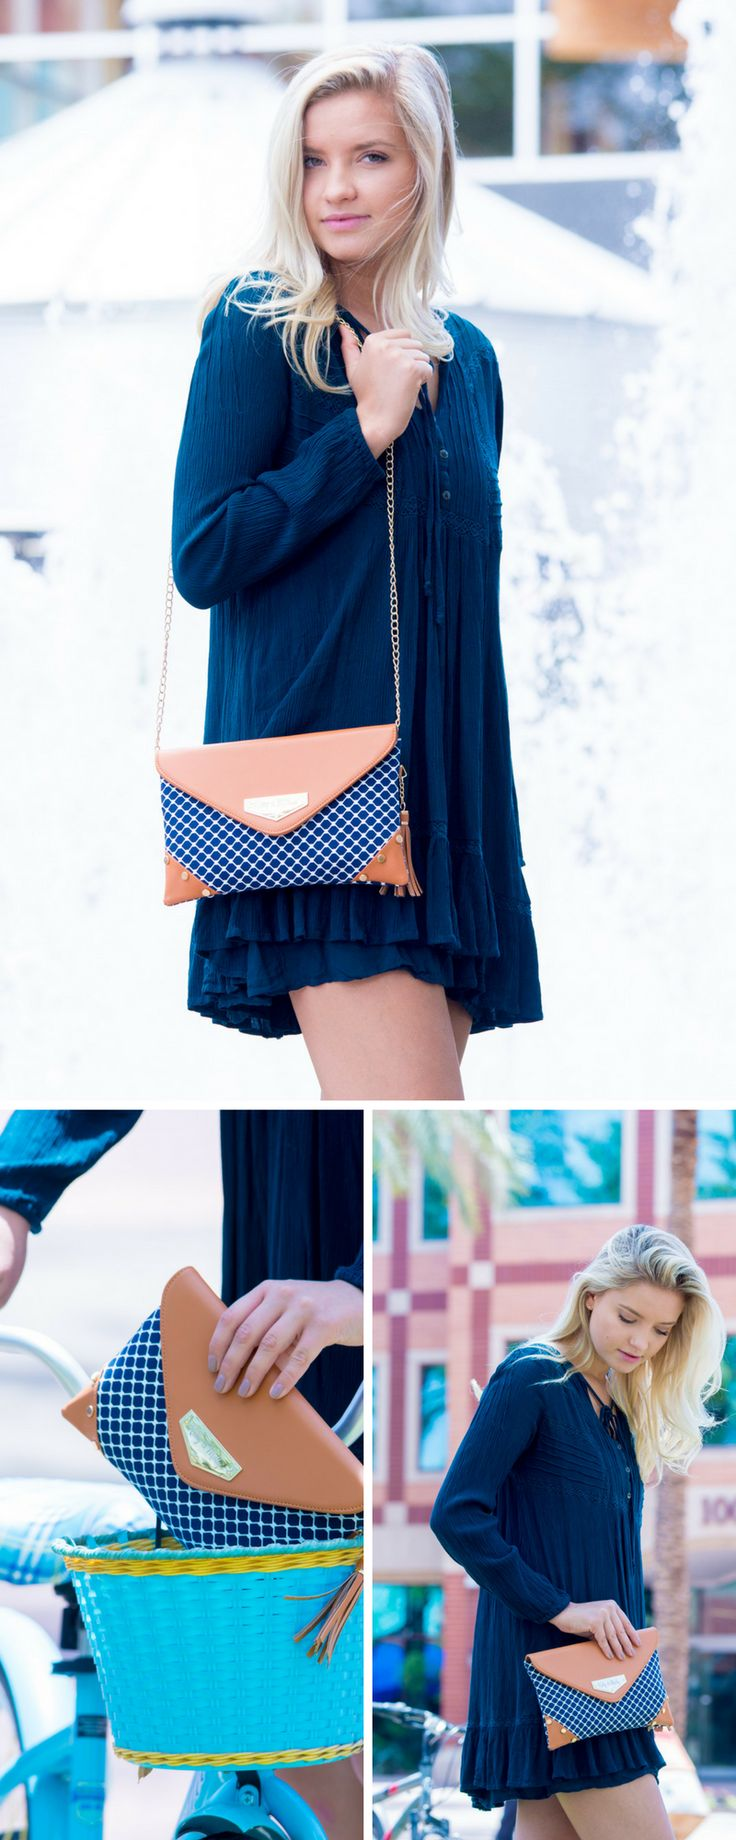 This Kelly & Molly blue clutch is amazing. I love the way it looks! The navy purse goes with all of my summer outfits. It is the perfect blue accessory.